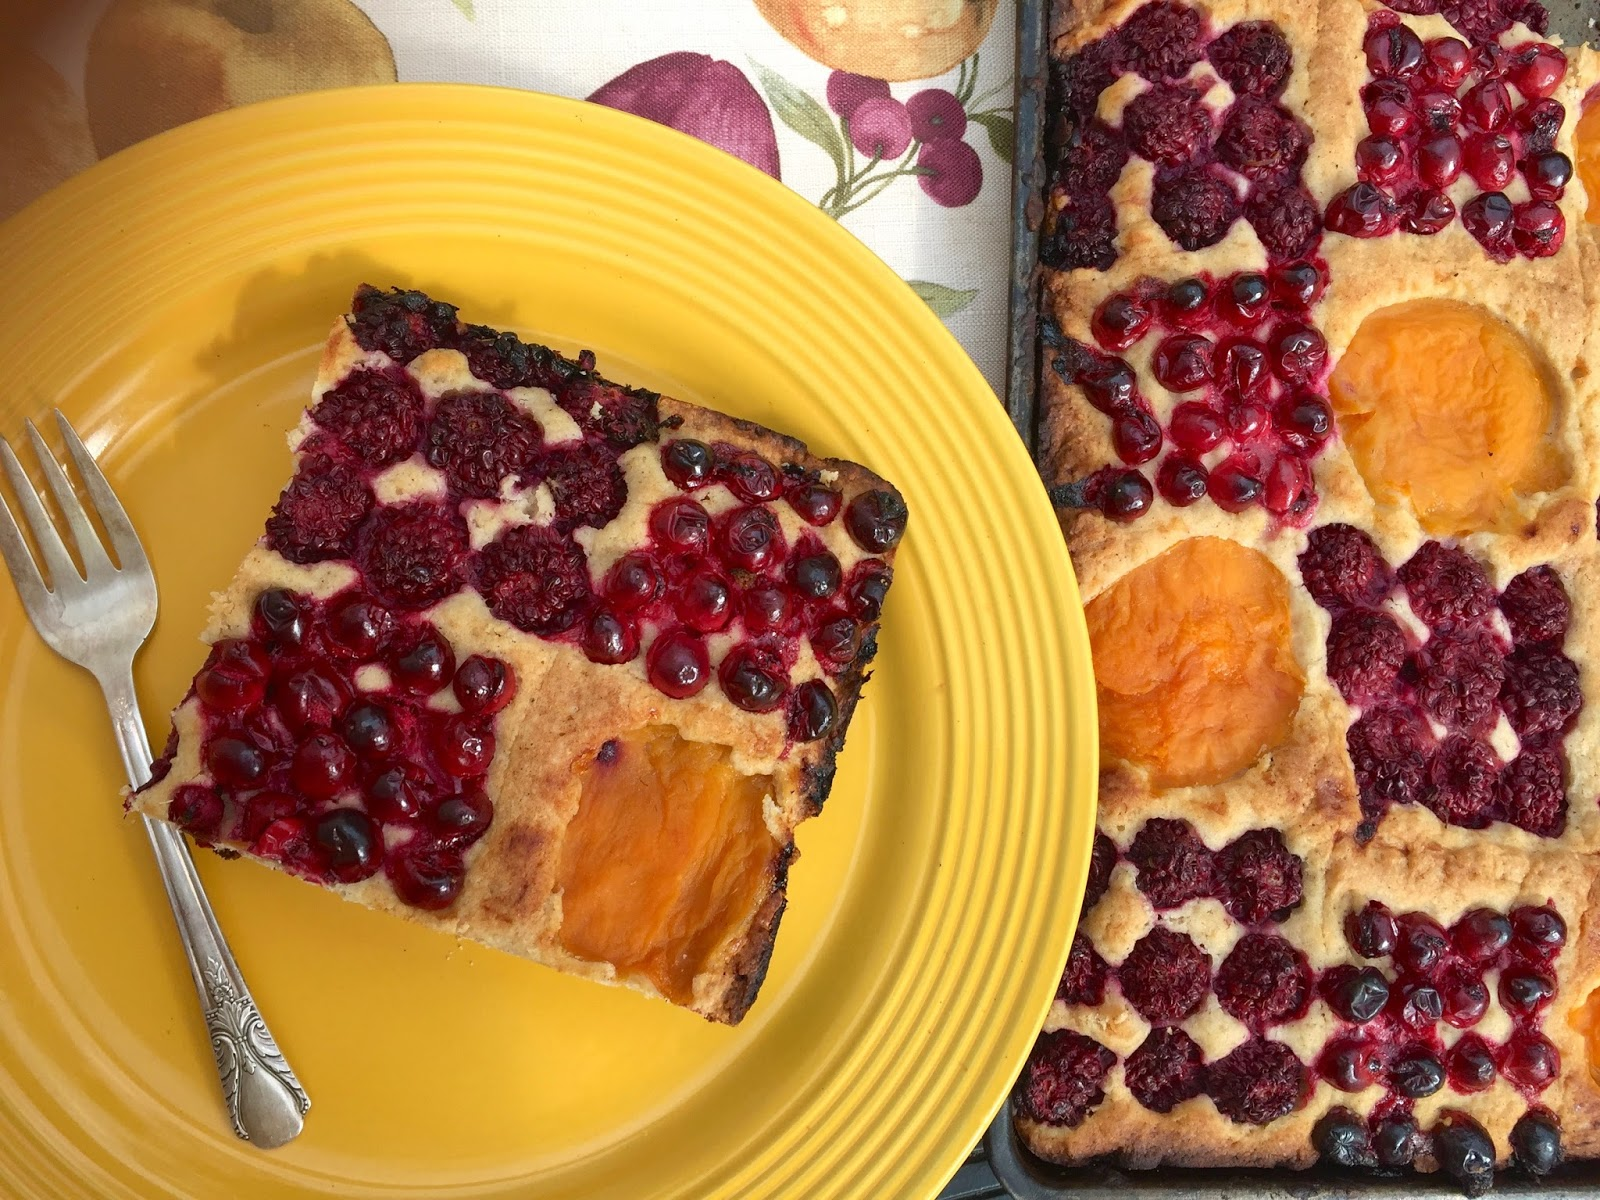 Diary of a Mad Hausfrau: Fruit Patchwork Sheet Cake